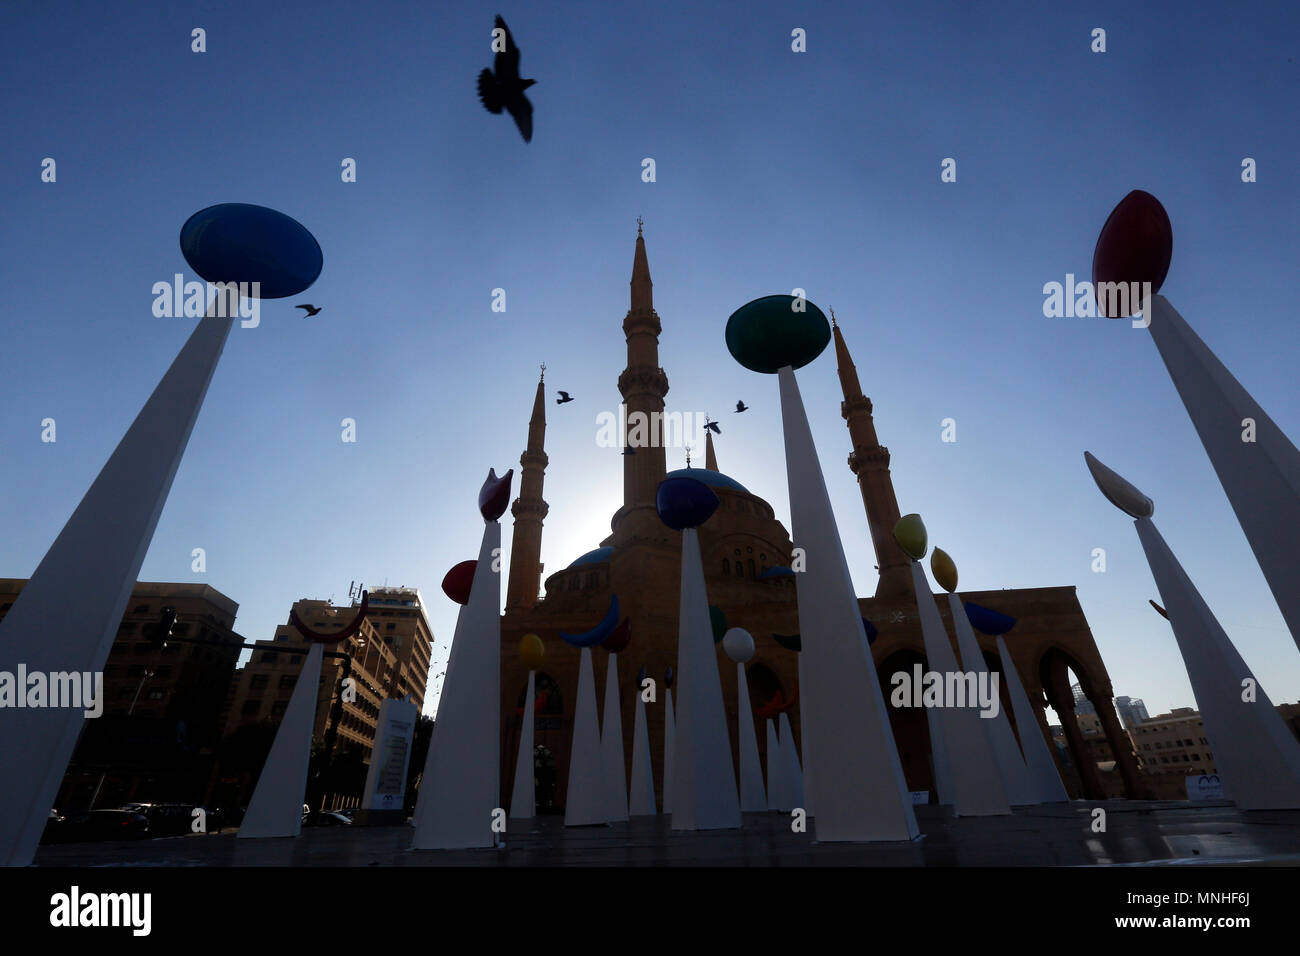 Popular 1 Day Ramadan Decor - 180517-beirut-may-17-2018-xinhua-ramadans-decorations-are-seen-on-the-first-day-of-the-holy-month-of-ramadan-in-a-street-in-beirut-lebanon-on-may-17-2018-xinhuabilal-jawich-MNHF6J  2018_879468.jpg